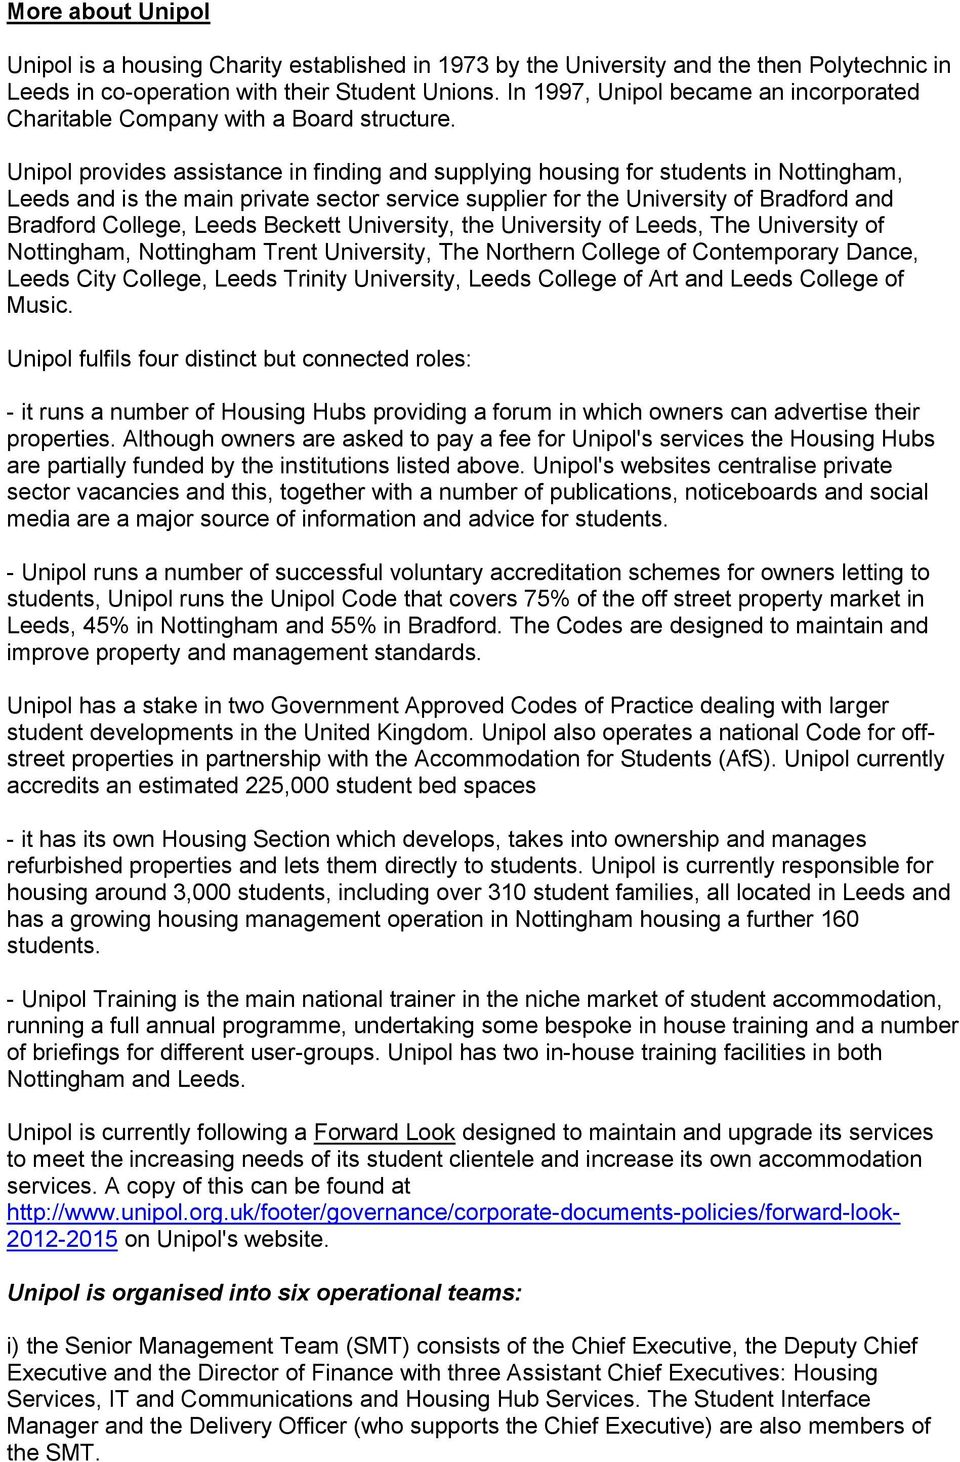 Unipol provides assistance in finding and supplying housing for students in Nottingham, Leeds and is the main private sector service supplier for the University of Bradford and Bradford College,